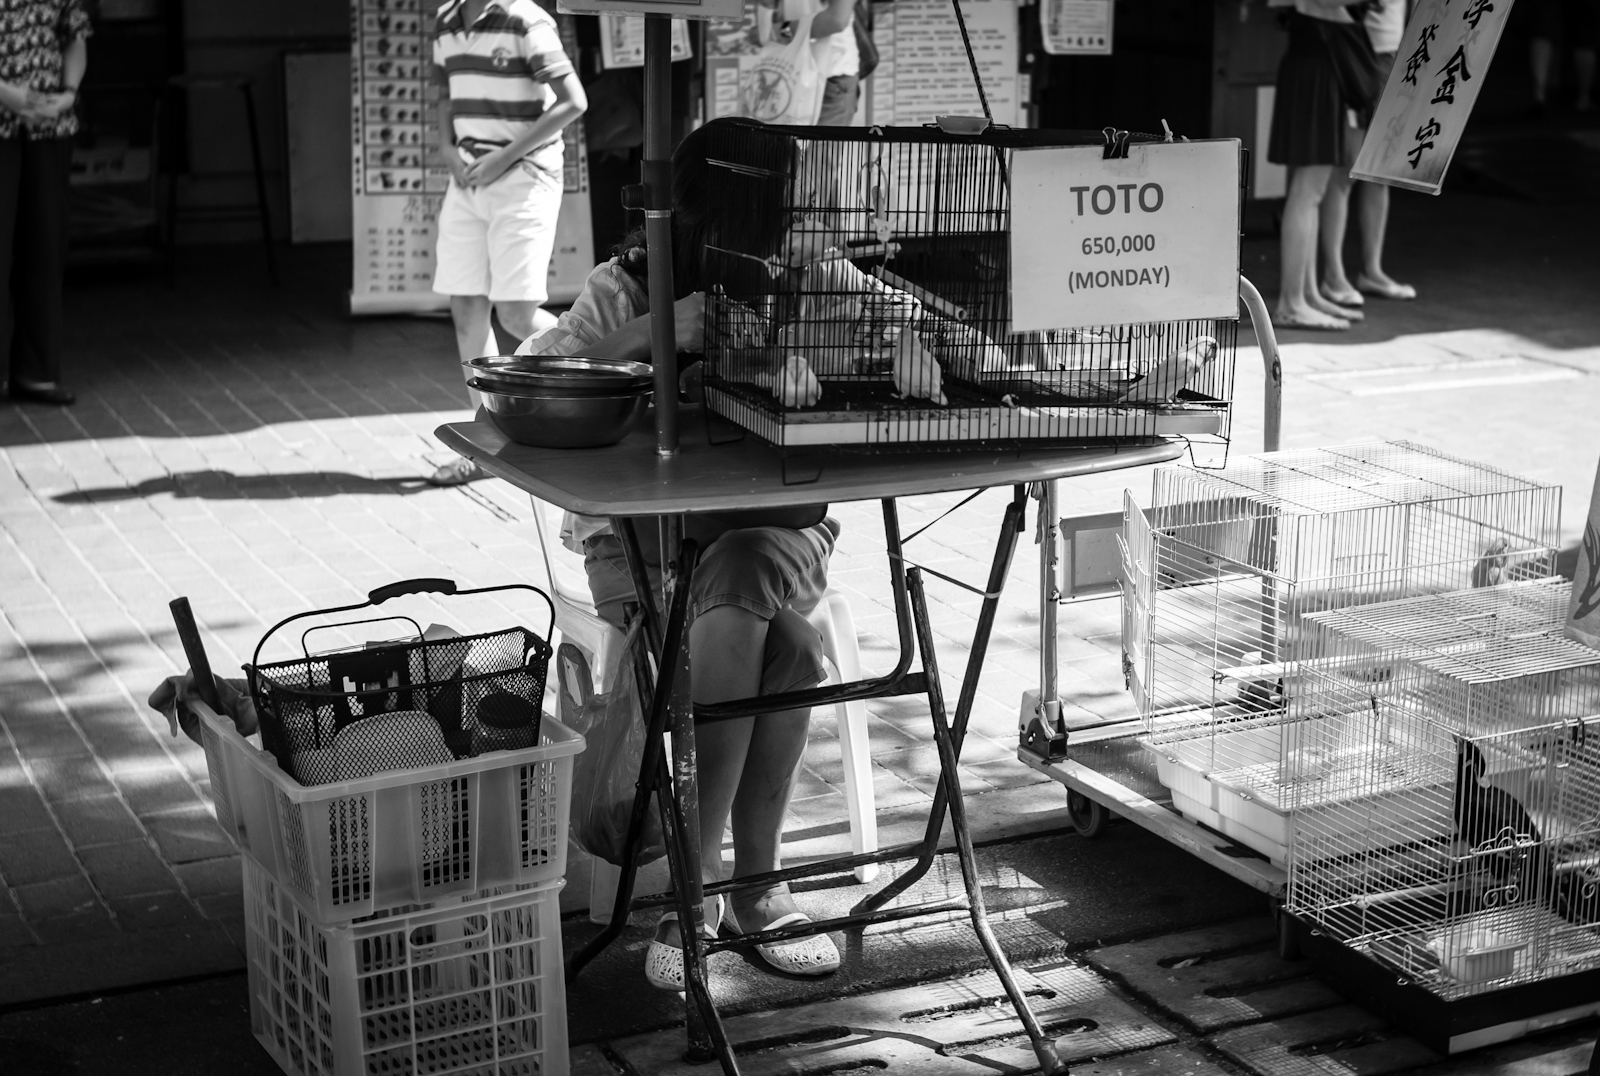 Street photography - Birds that can guess the winning lottery number